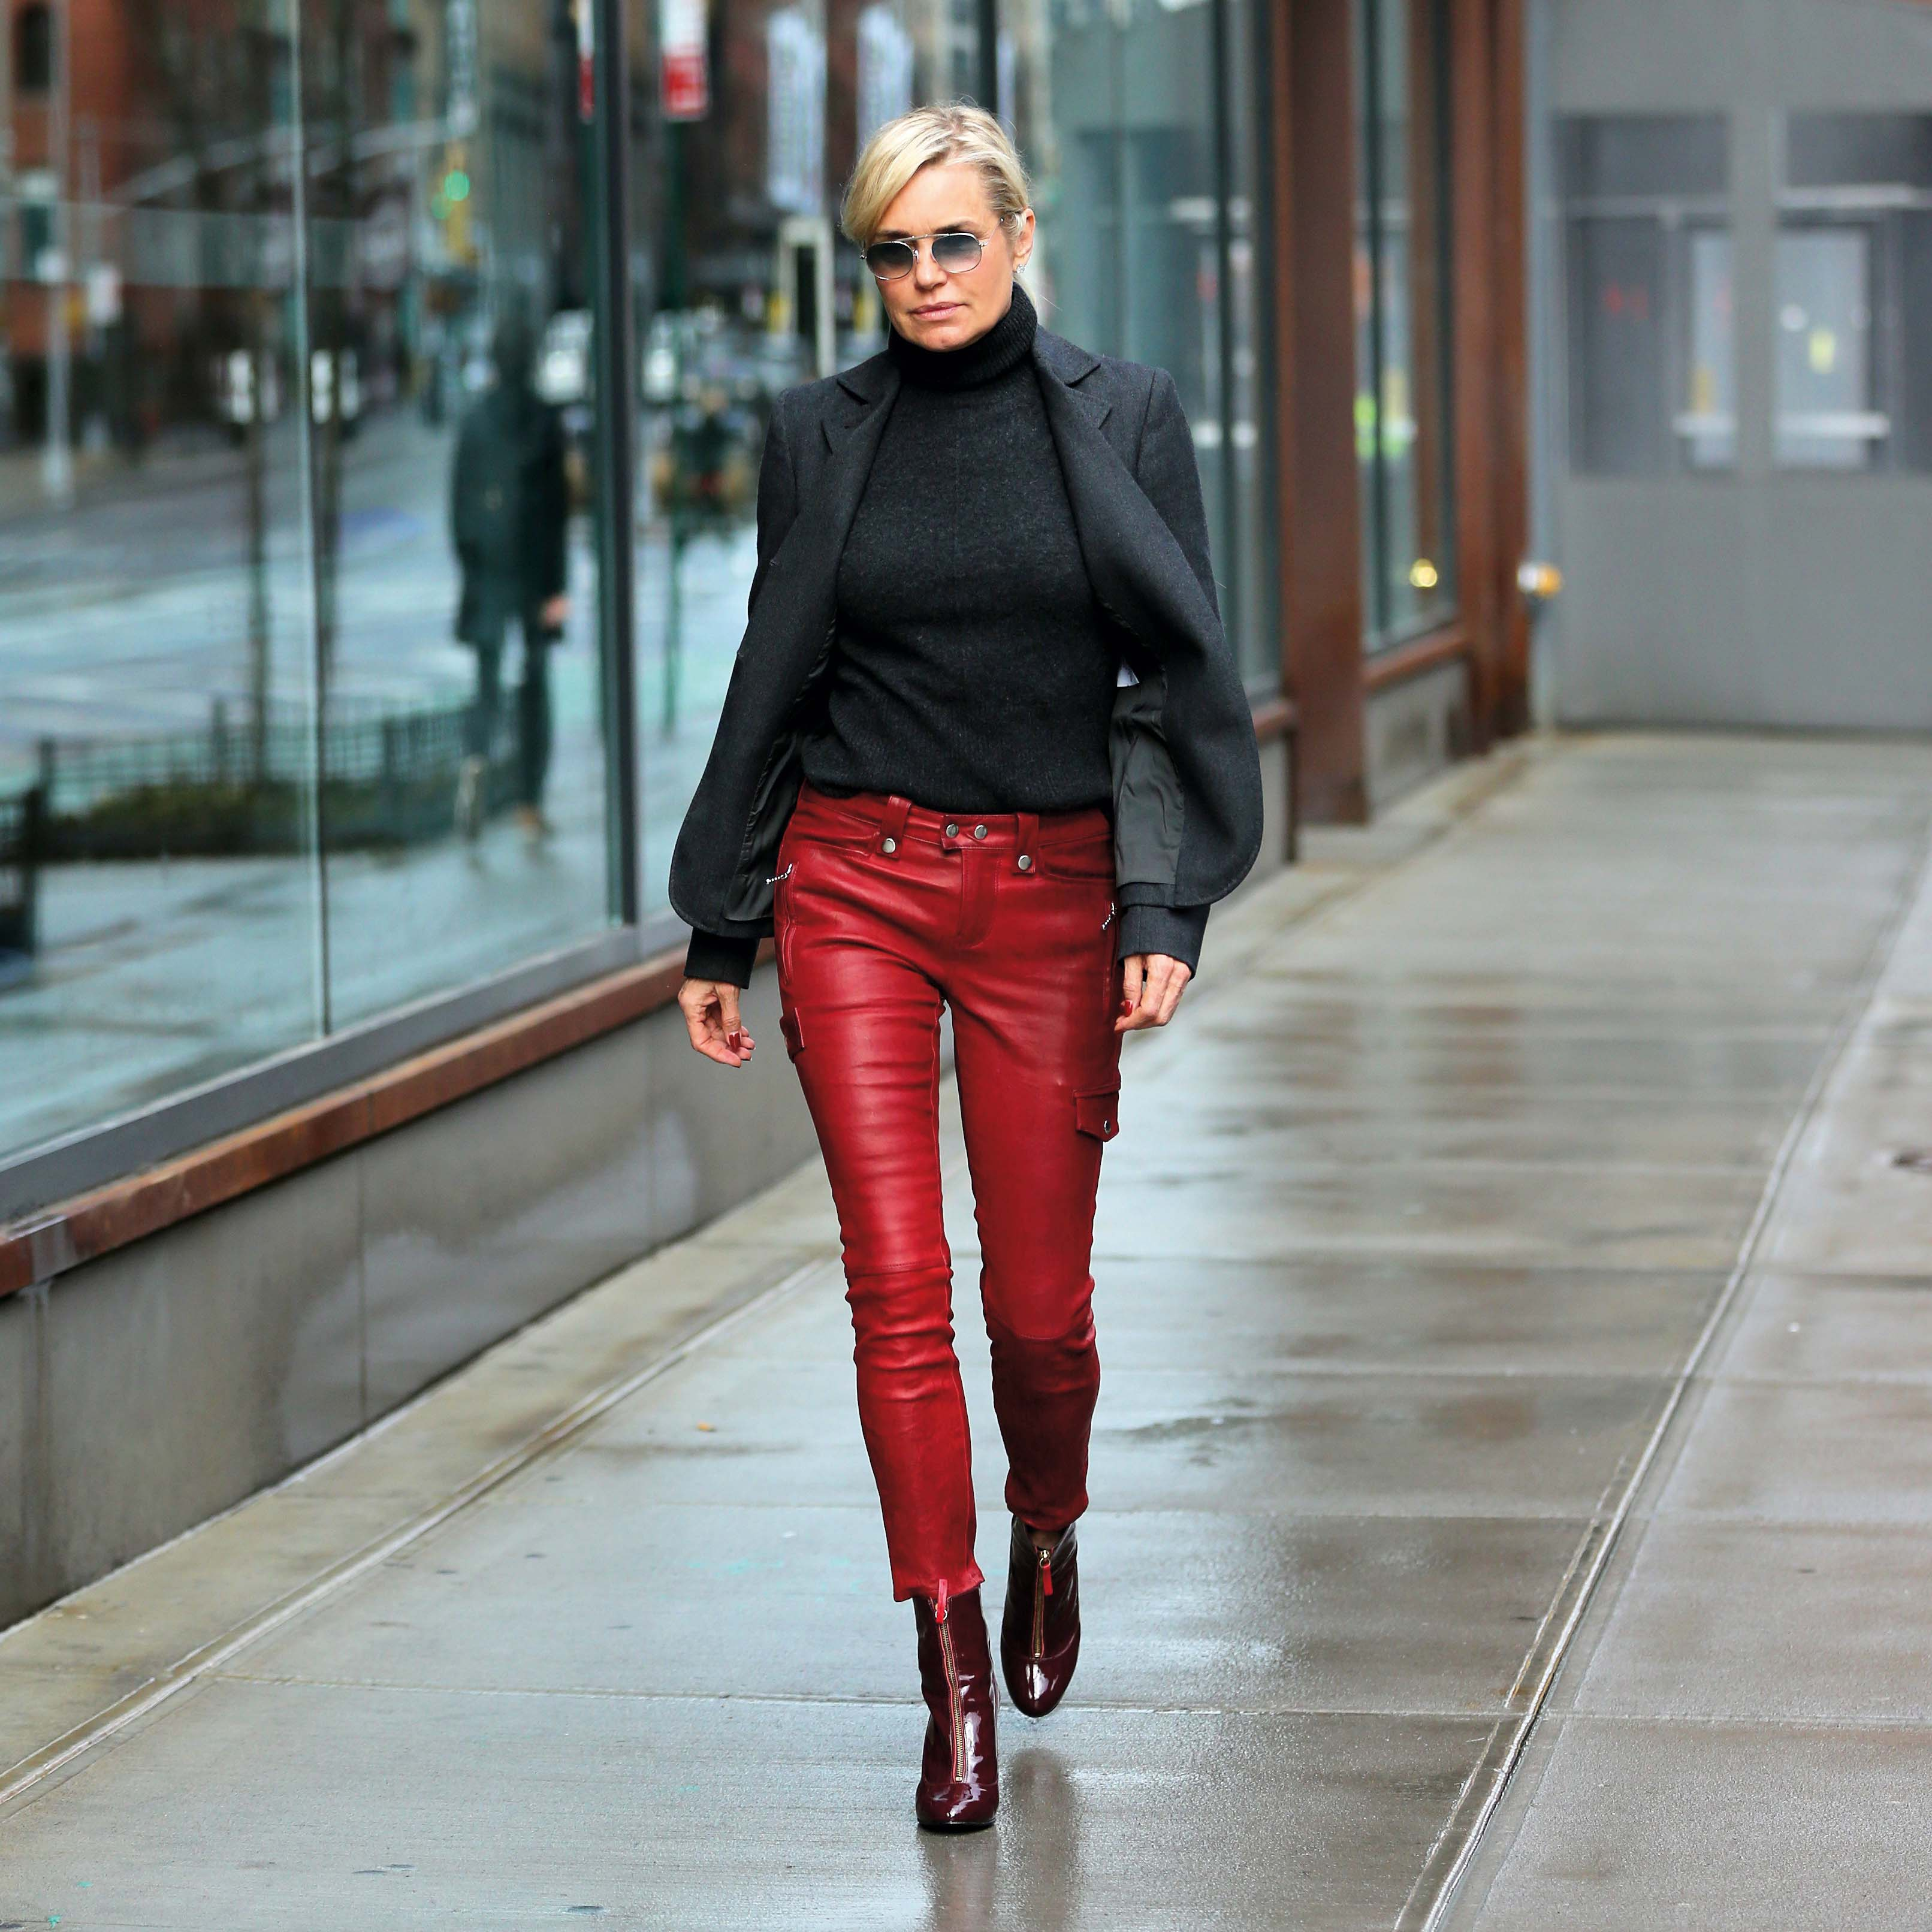 TV personality Yolanda Hadid, wearing red leather pants, red ankle boots, black turtleneck and jacket, walks to Gigi Hadid's apartment in New York City, New York on January 23, 2018. <P> Pictured: Yolanda Hadid <B>Ref: SPL1649525  230118  </B><BR/> Picture by: Christopher Peterson/Splash News<BR/> </P><P> <B>Splash News and Pictures</B><BR/> Los Angeles:310-821-2666<BR/> New York:212-619-2666<BR/> London:870-934-2666<BR/> <span id=